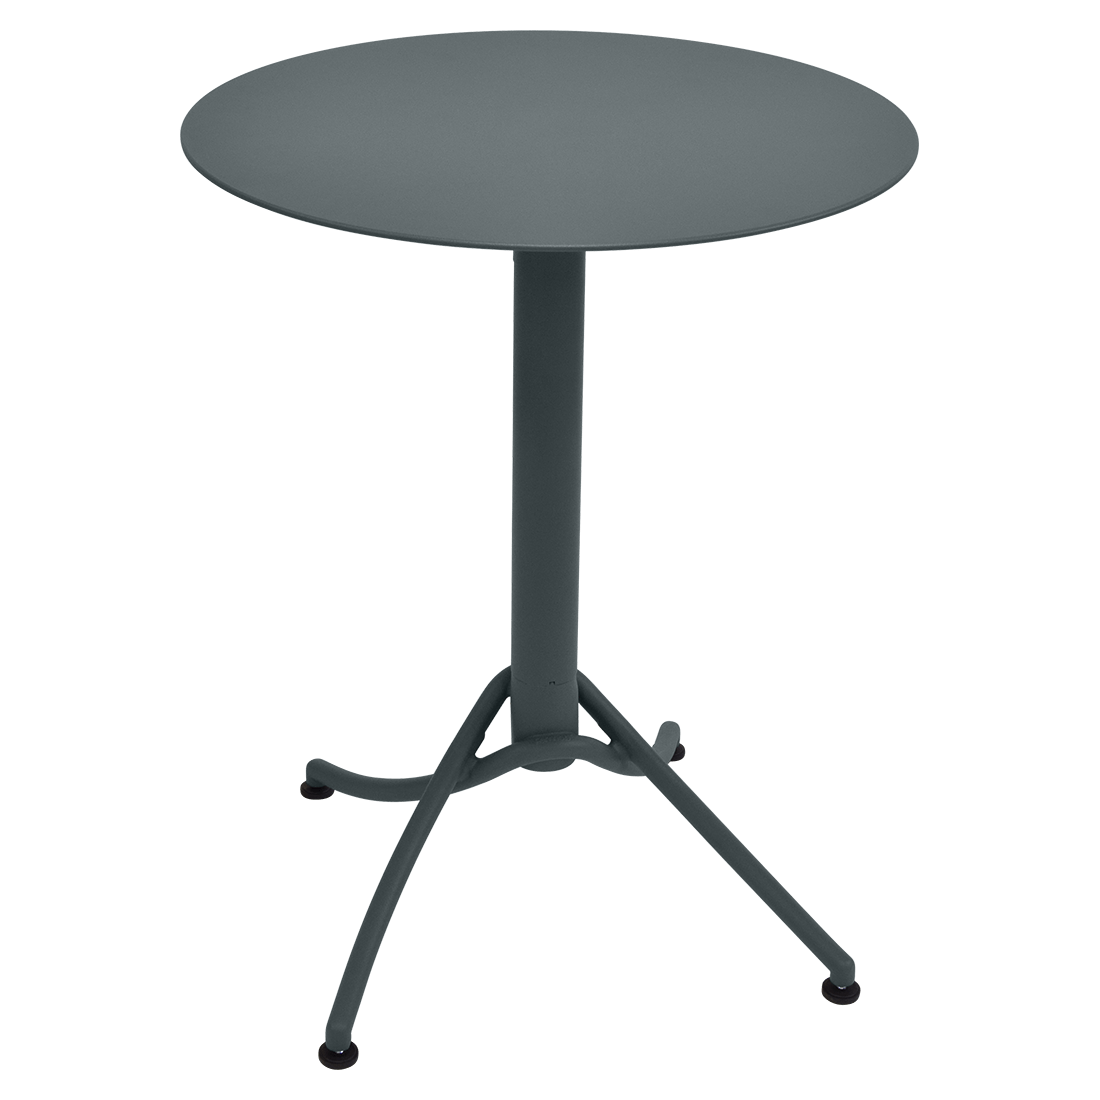 Separateur De Terrasse Restaurant Table Ø 60 Cm Ariane Restaurant Furniture Fermob